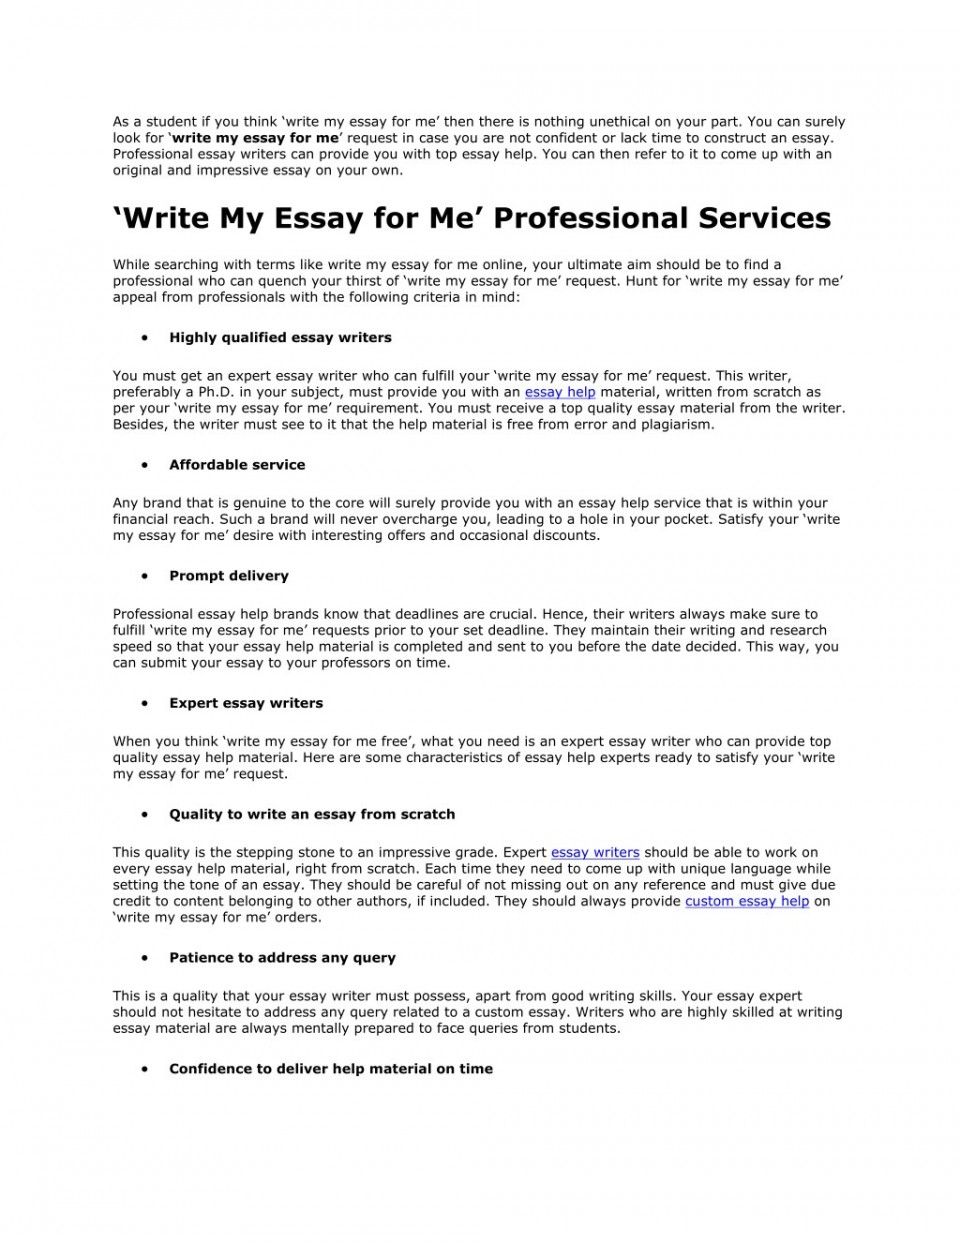 017 Write My Essay For Me Example As Student If You Think Surprising Free College Online 960